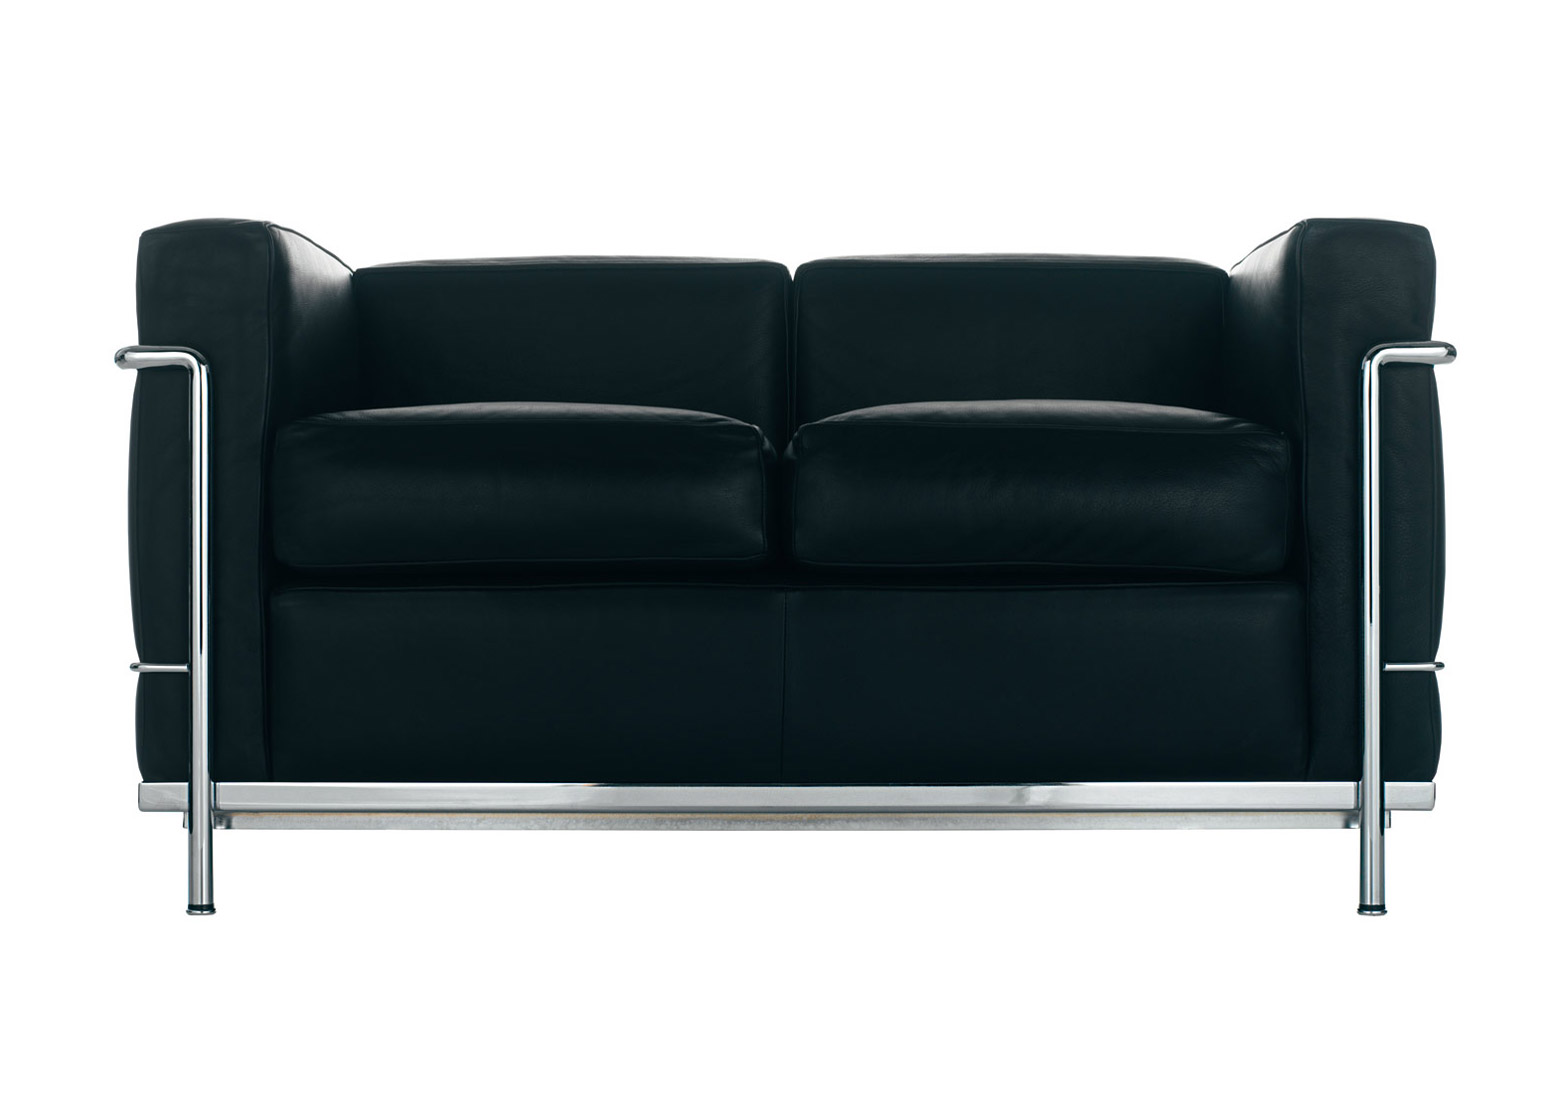 le corbusier sofa bed uk le corbusier style 3 seater pe sofa swiveluk com thesofa. Black Bedroom Furniture Sets. Home Design Ideas